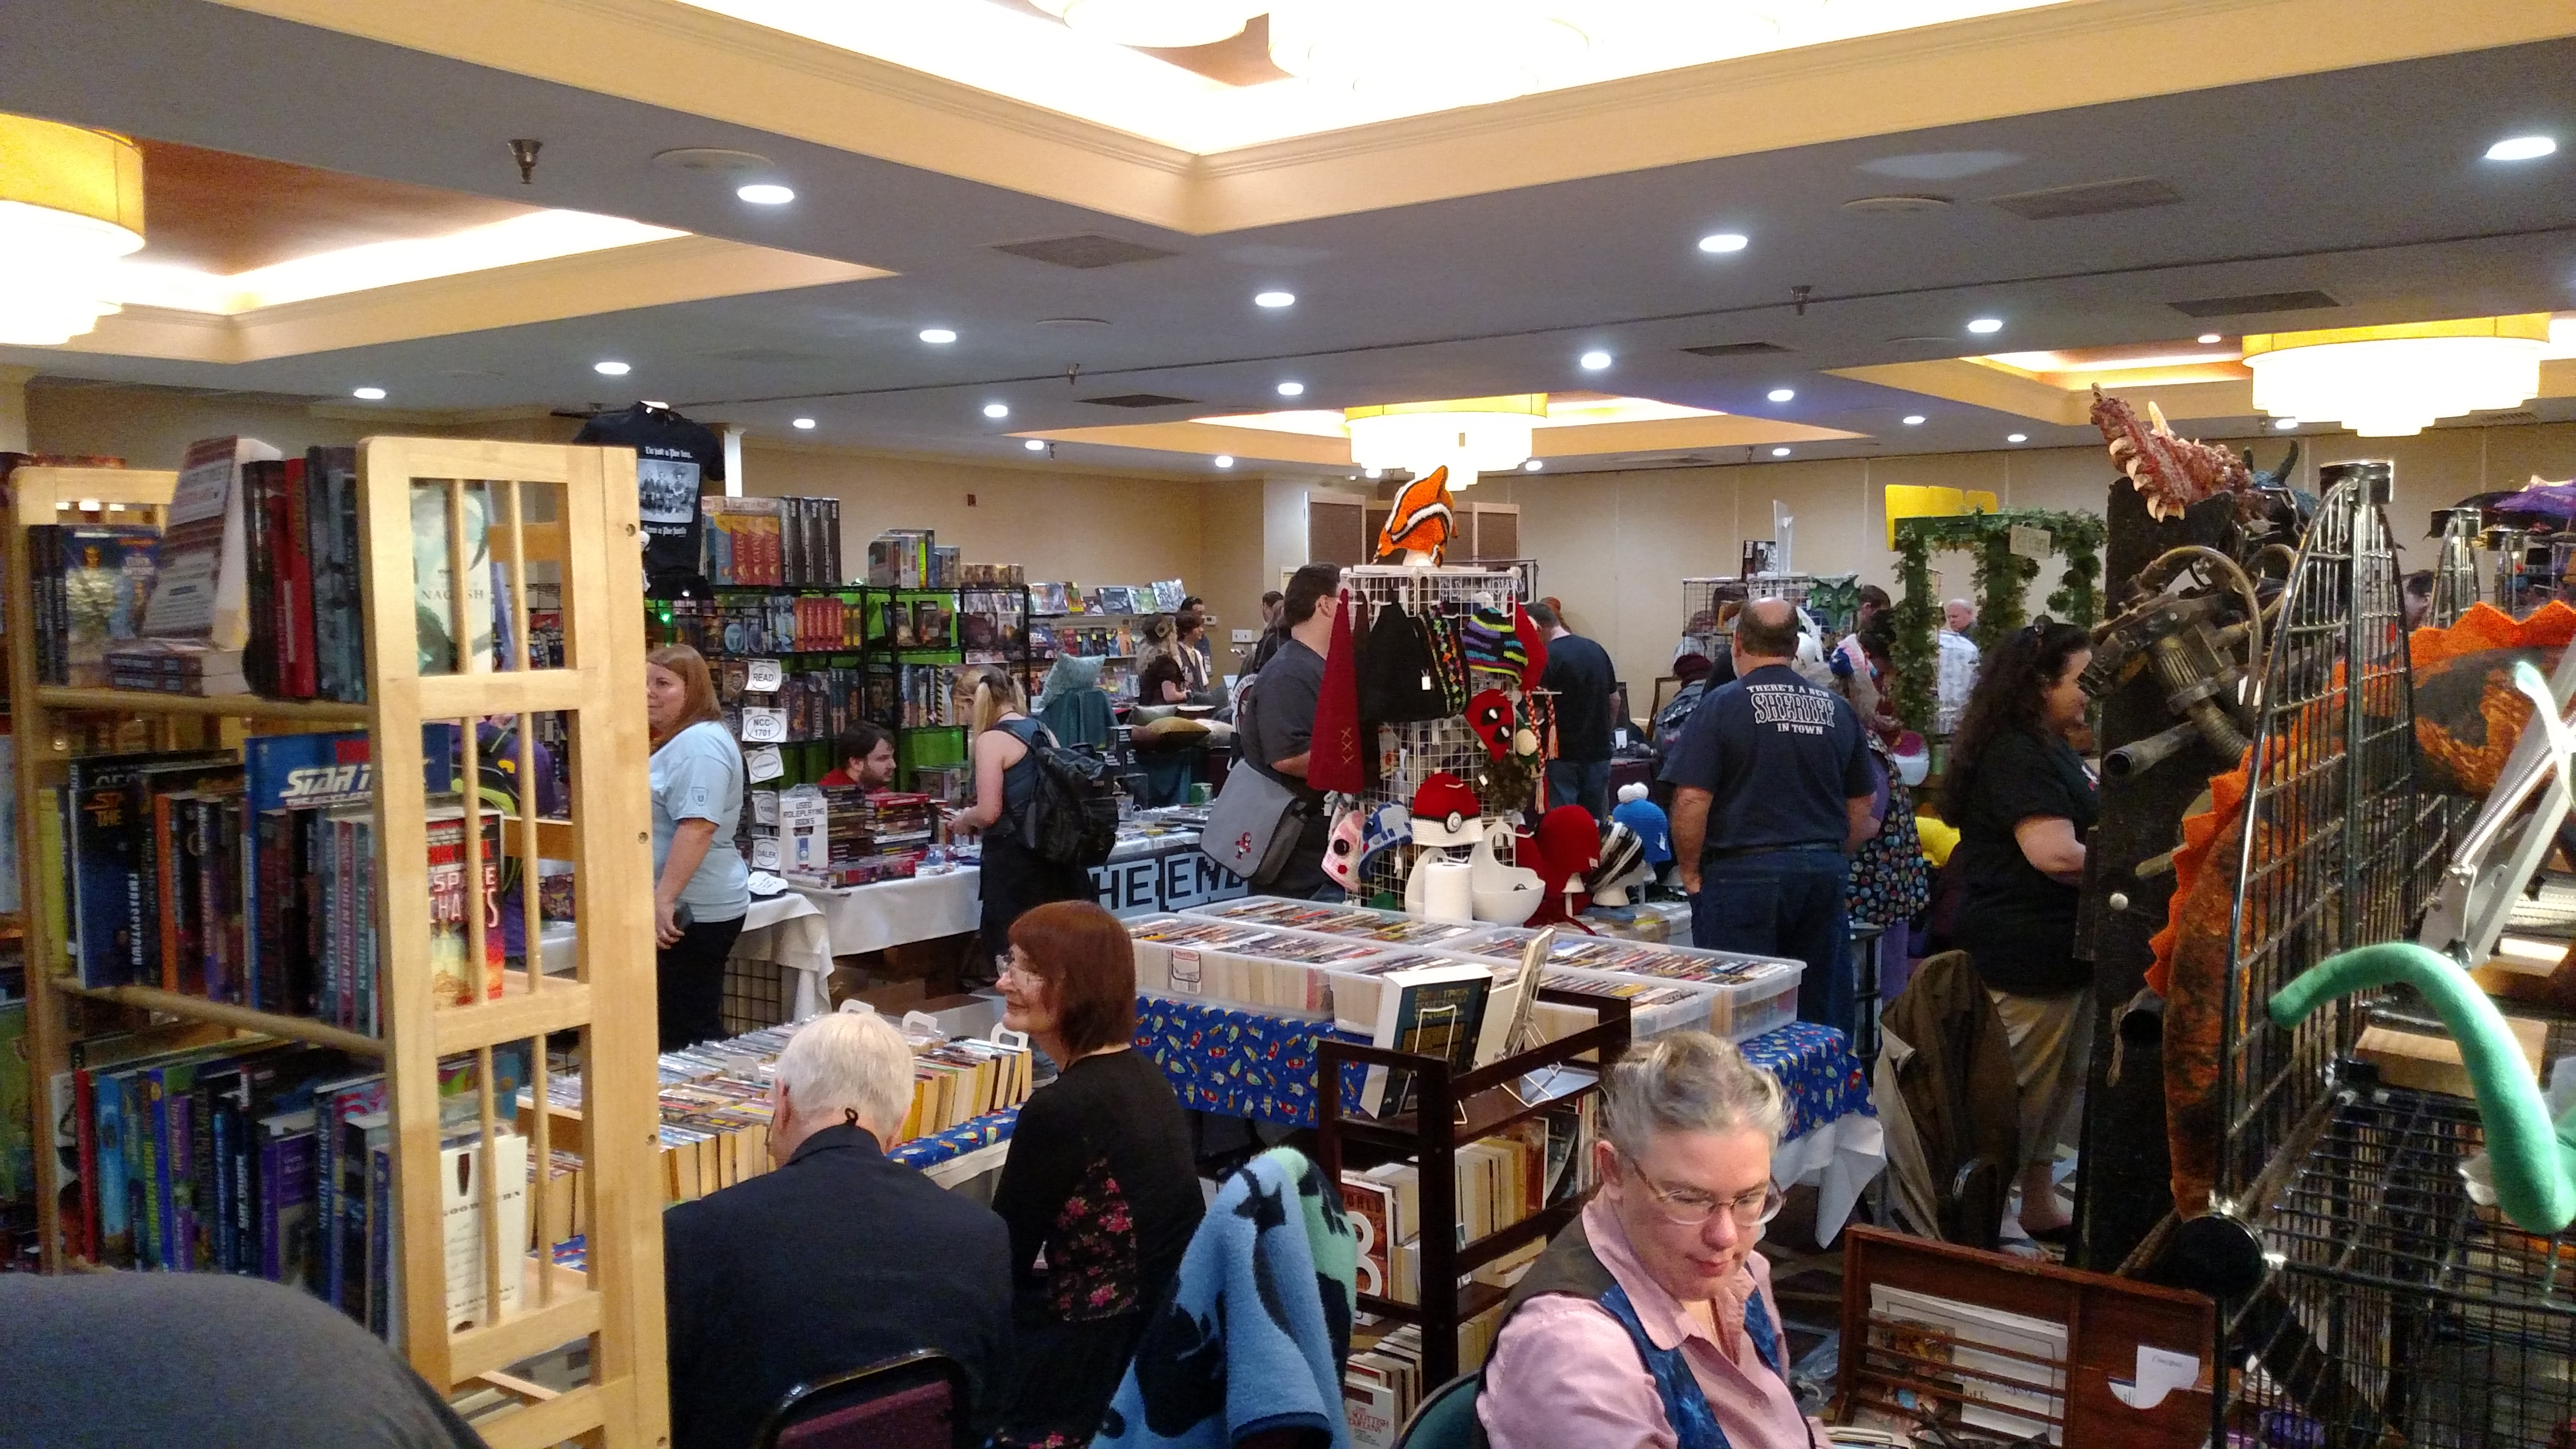 Third picture of the Mysticon showroom.